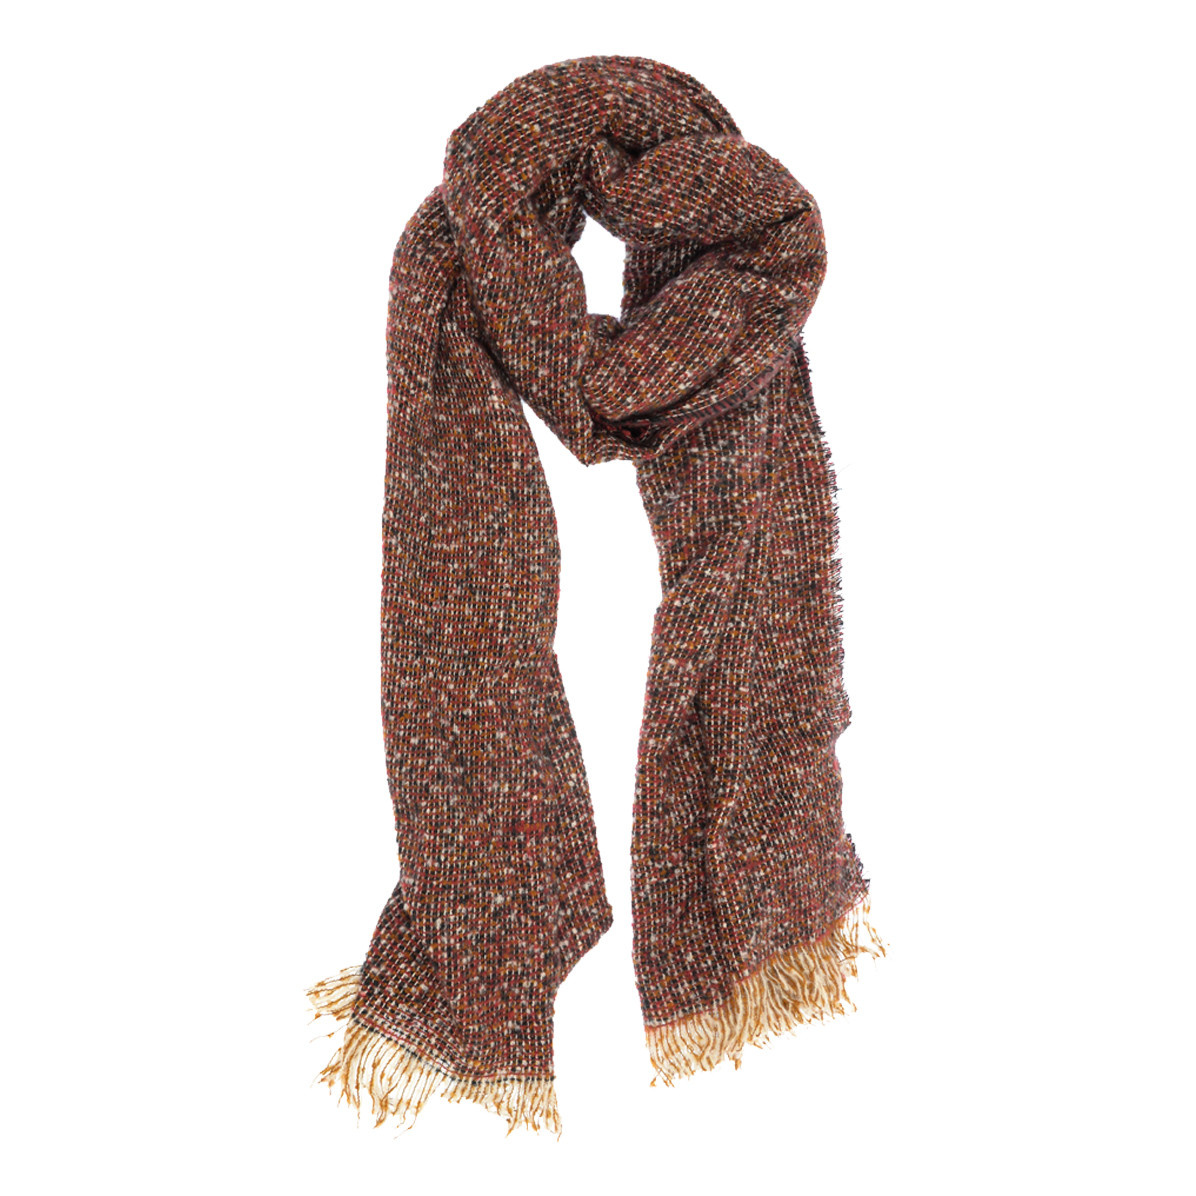 Joy Susan Joy Susan Tweed Scarf Burgundy / Black